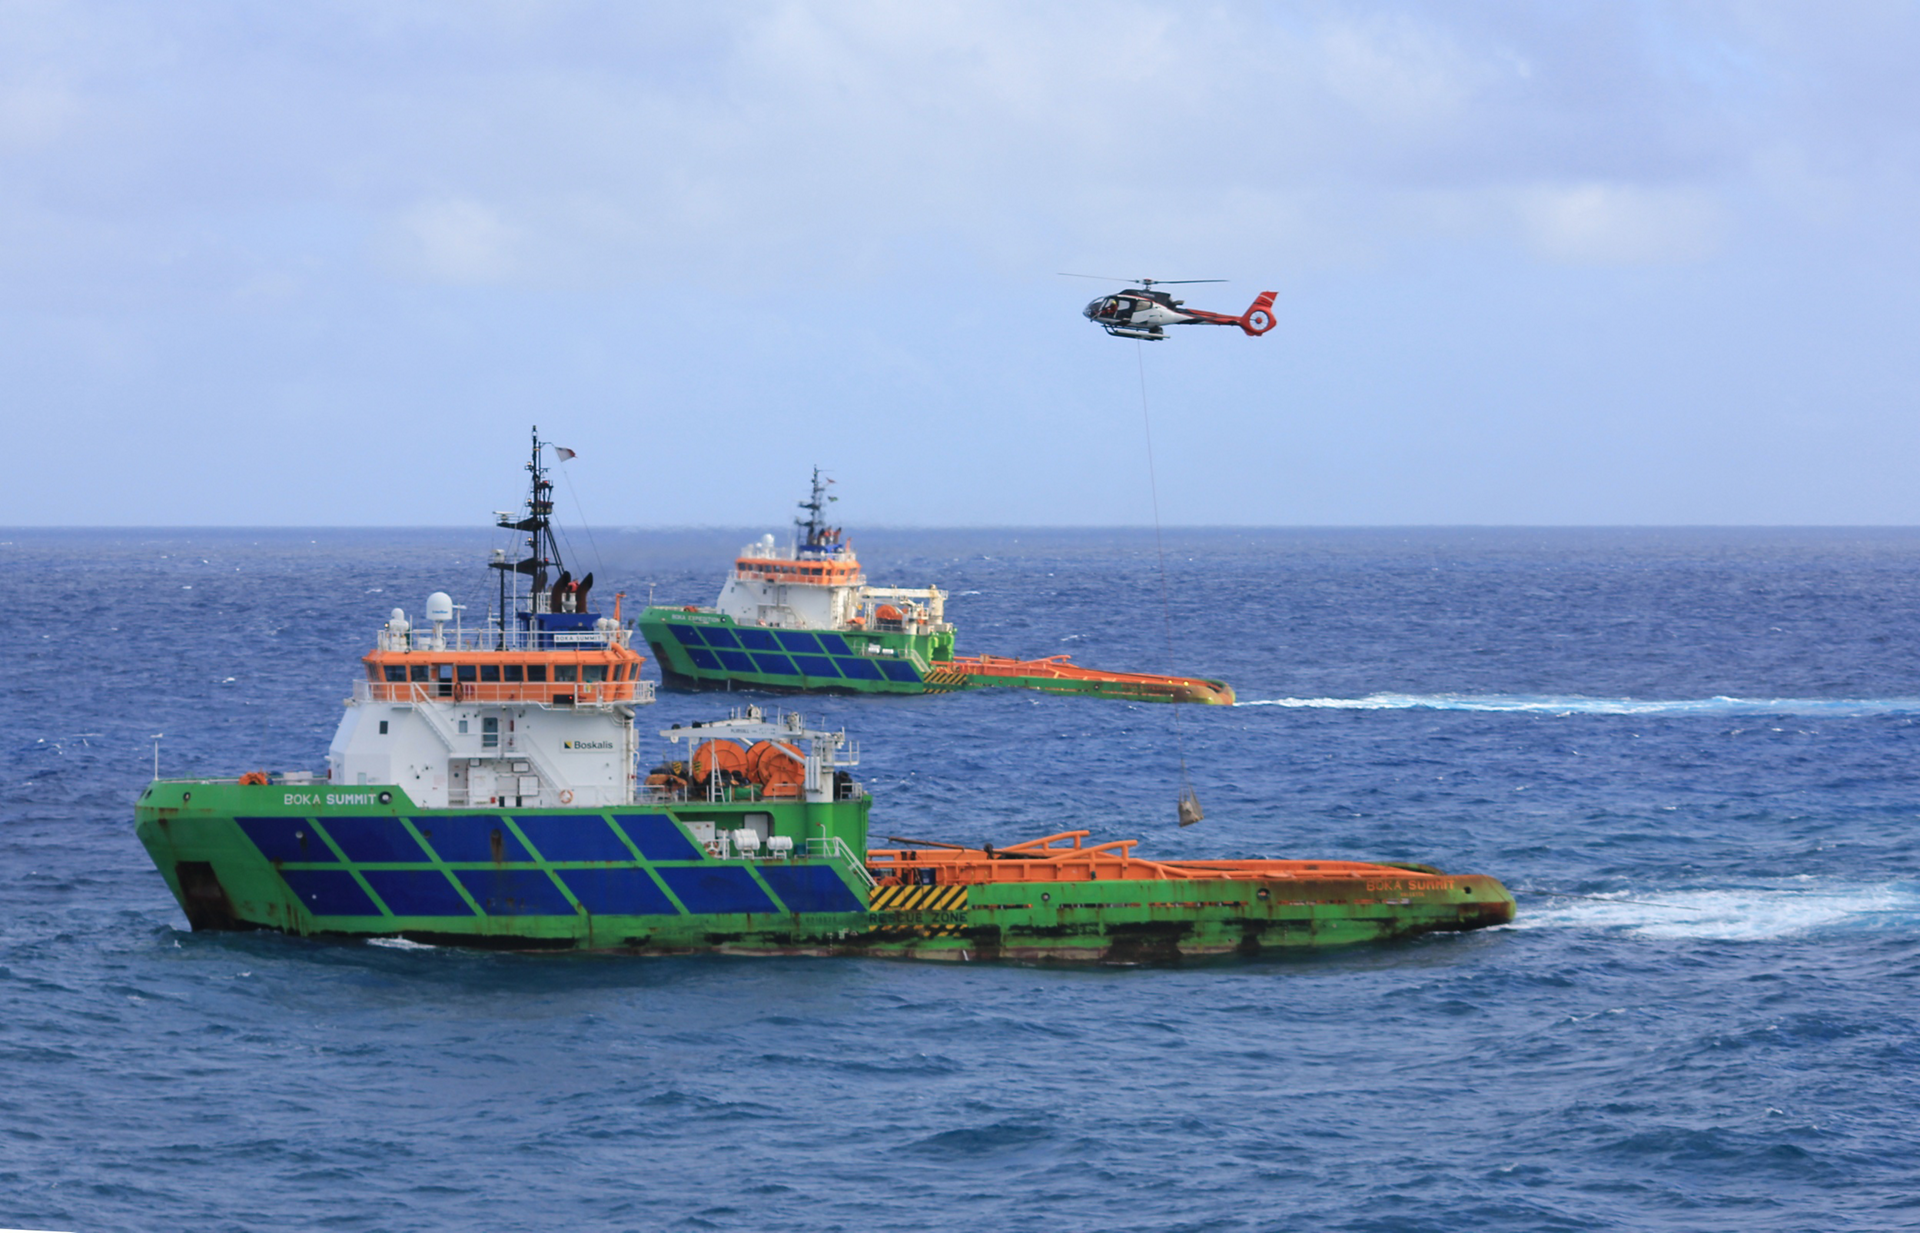 Corail Helicopters Mauritius' H130 transported more than 100 tonnes of equipment and participated in removing at least 50 tonnes of crude oil.